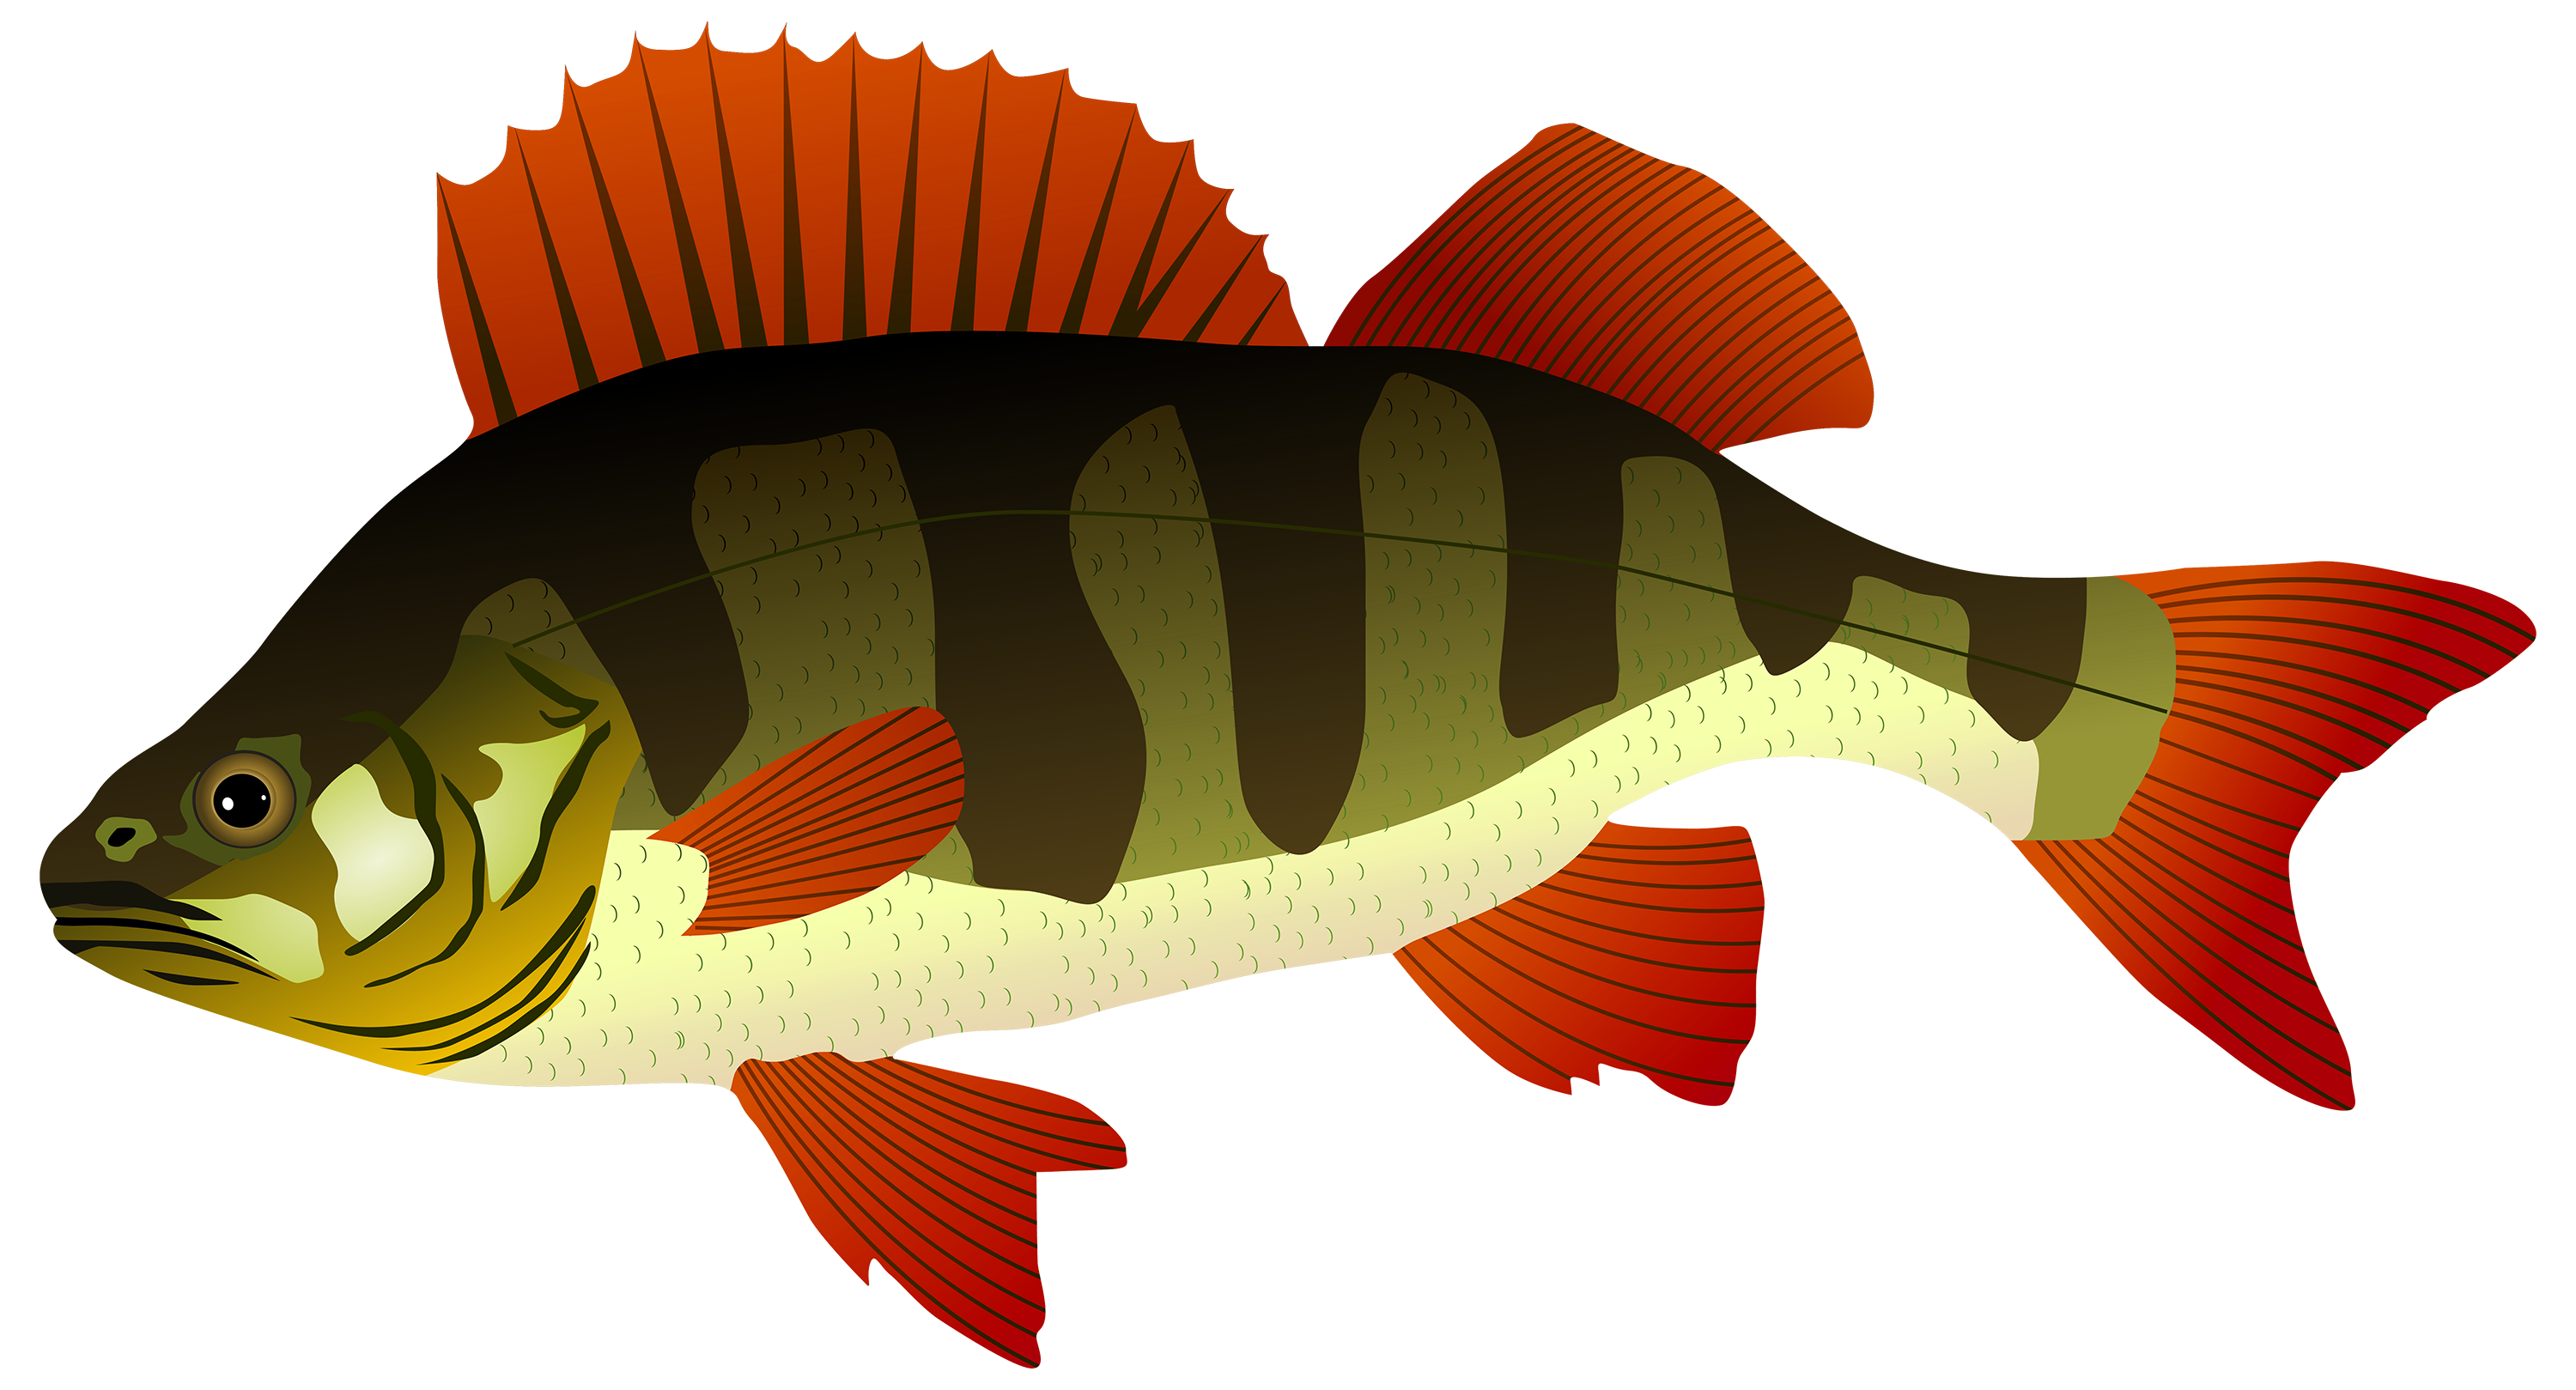 Fish clipart png jpg royalty free library Bass Fish Clipart at GetDrawings.com | Free for personal use Bass ... jpg royalty free library